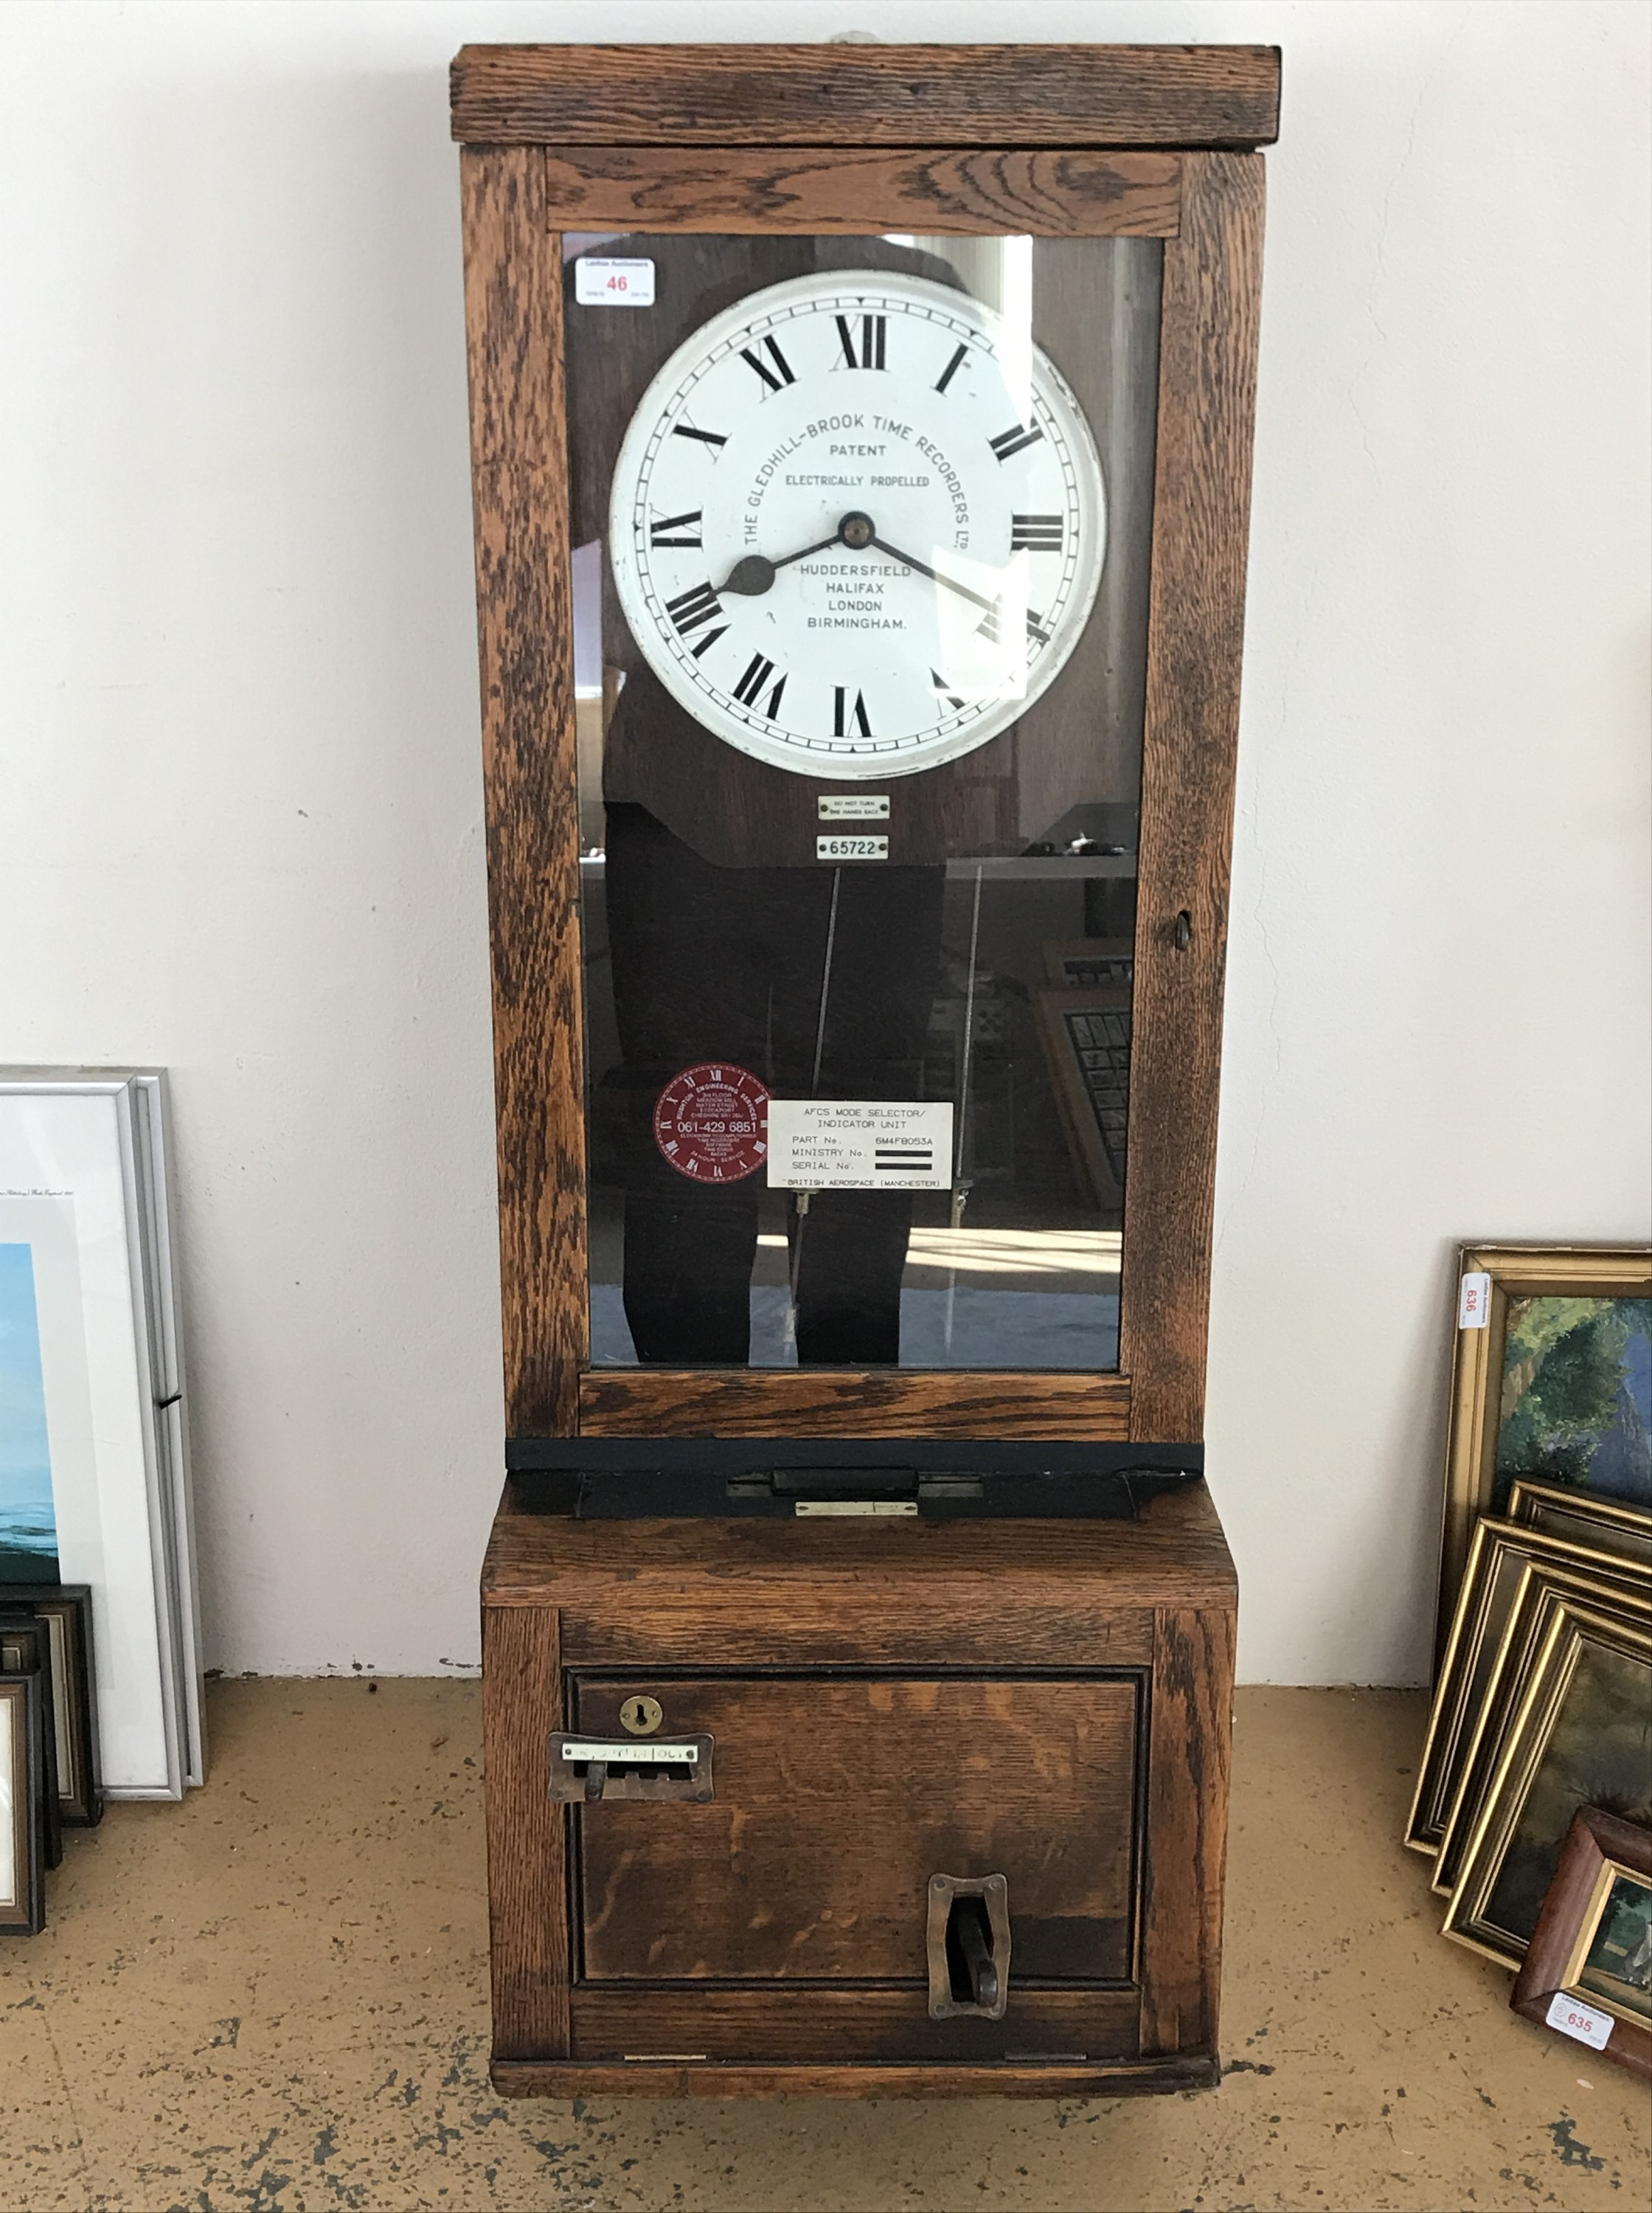 Lot 46 - An early 20th Century Gledhill Brook time recorder / clocking-in clock